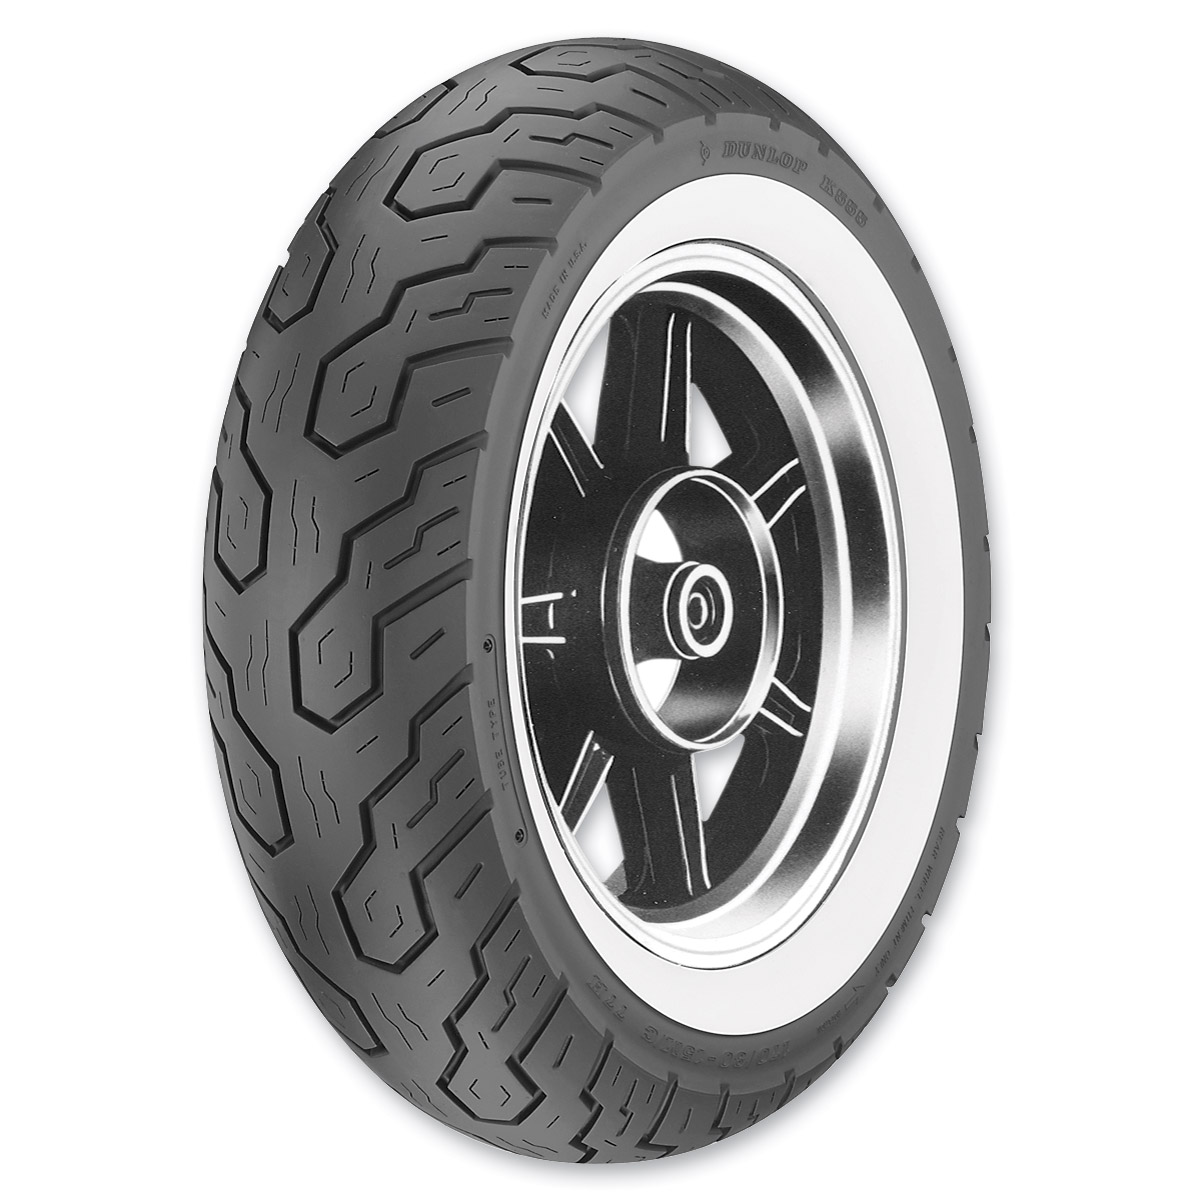 Michelin Whitewall Tires >> Dunlop K555 170 80 15 Wide Whitewall Rear Tire 45941232